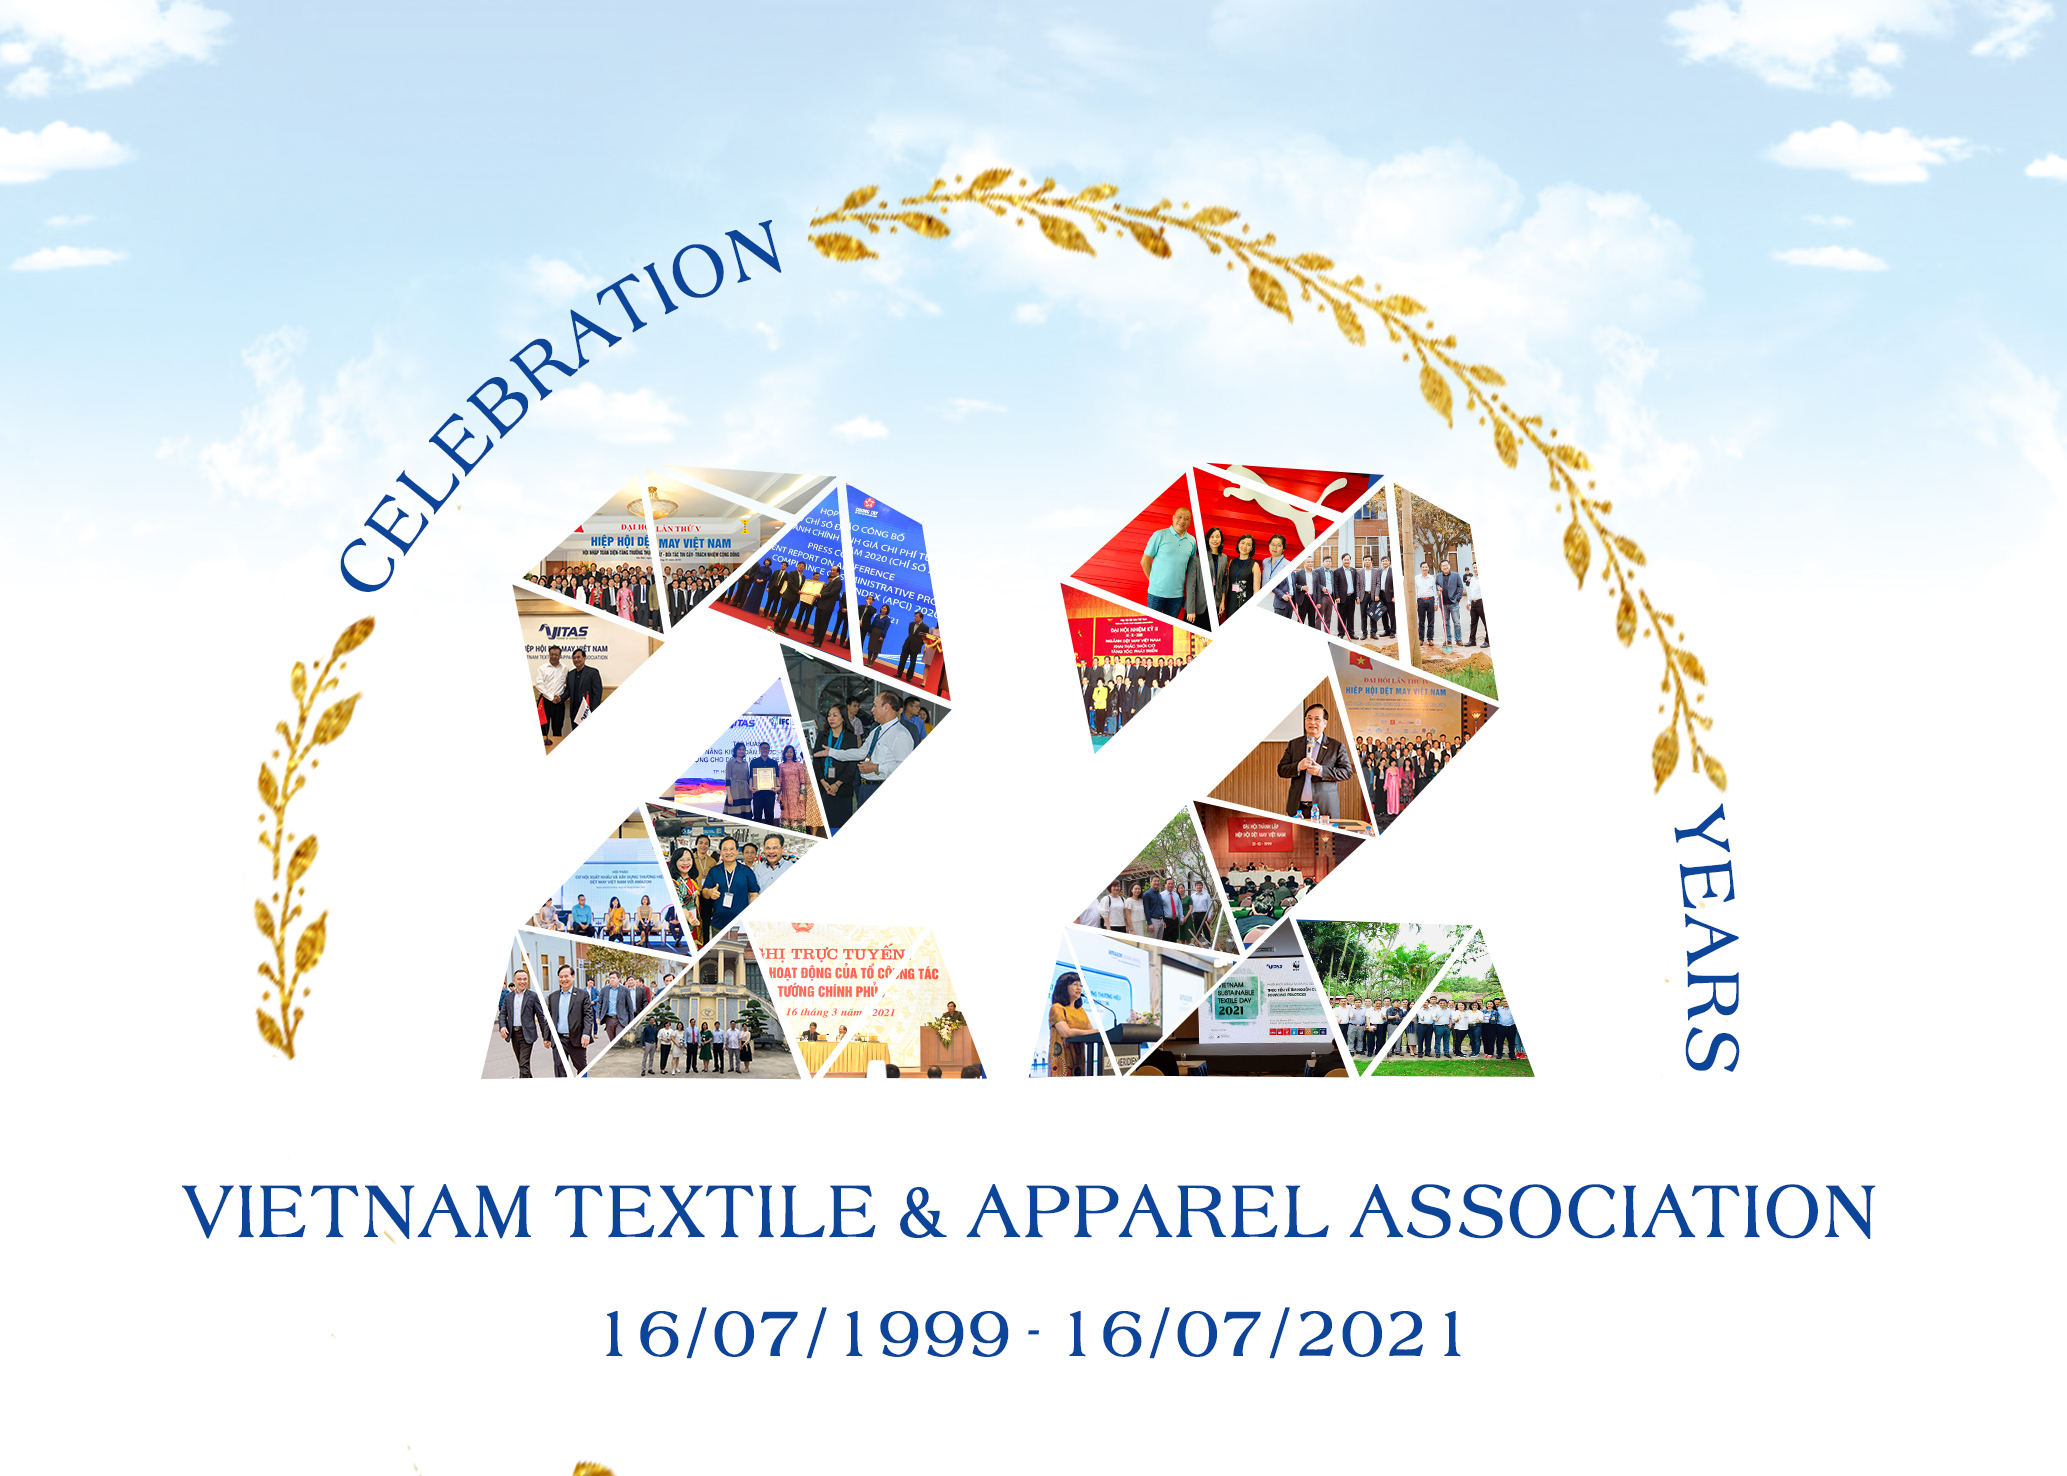 Vietnam Textile and Apparel Association (VITAS) - an effective assistant for the development of the industry